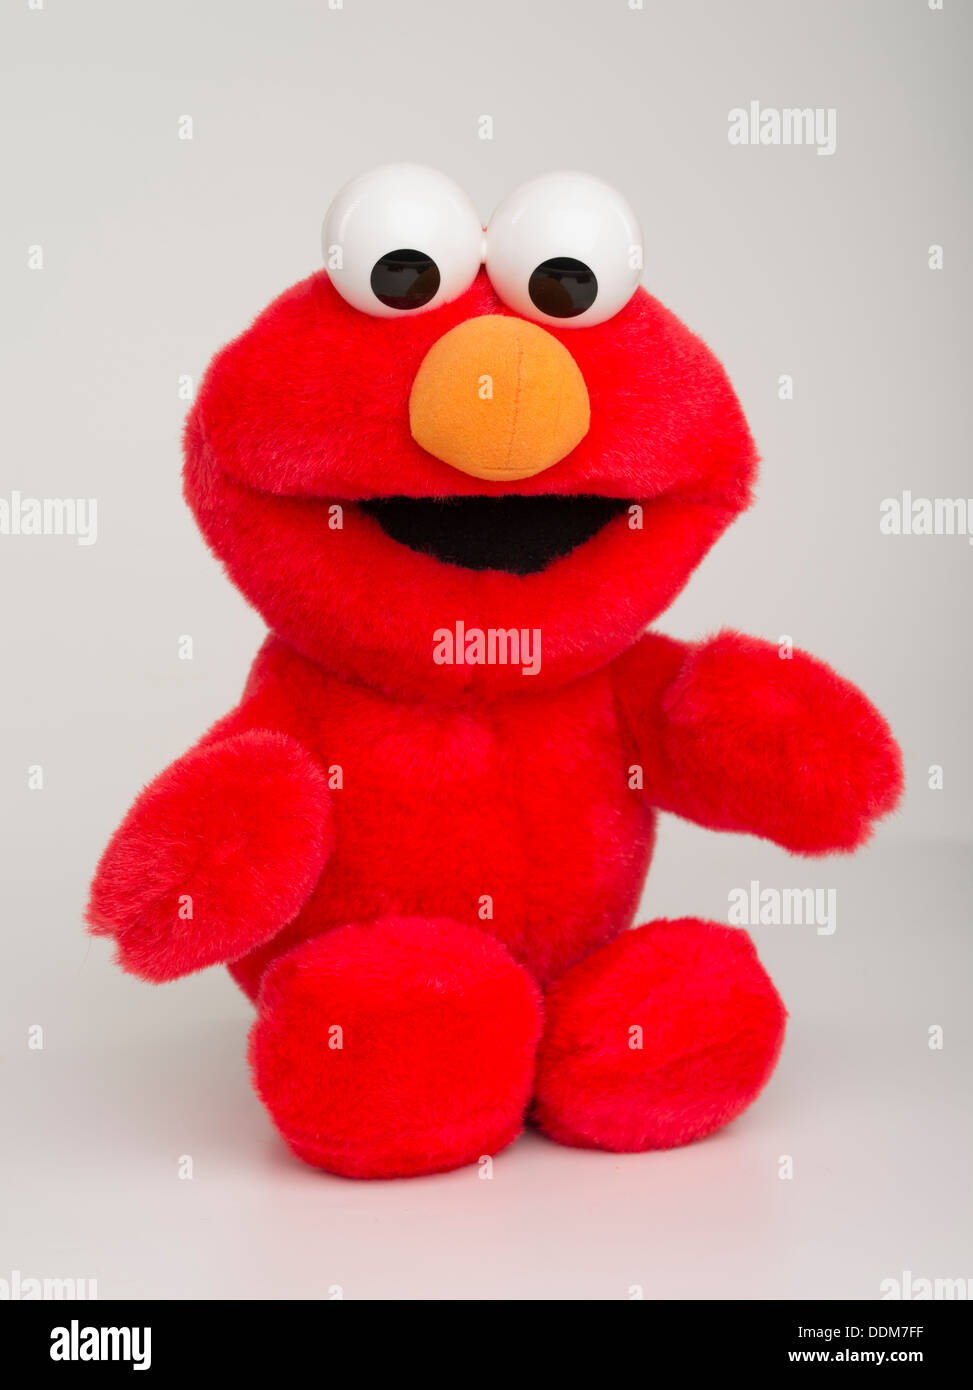 Tickle Me Elmo 1996 by Tyco Toys  Character Muppet from